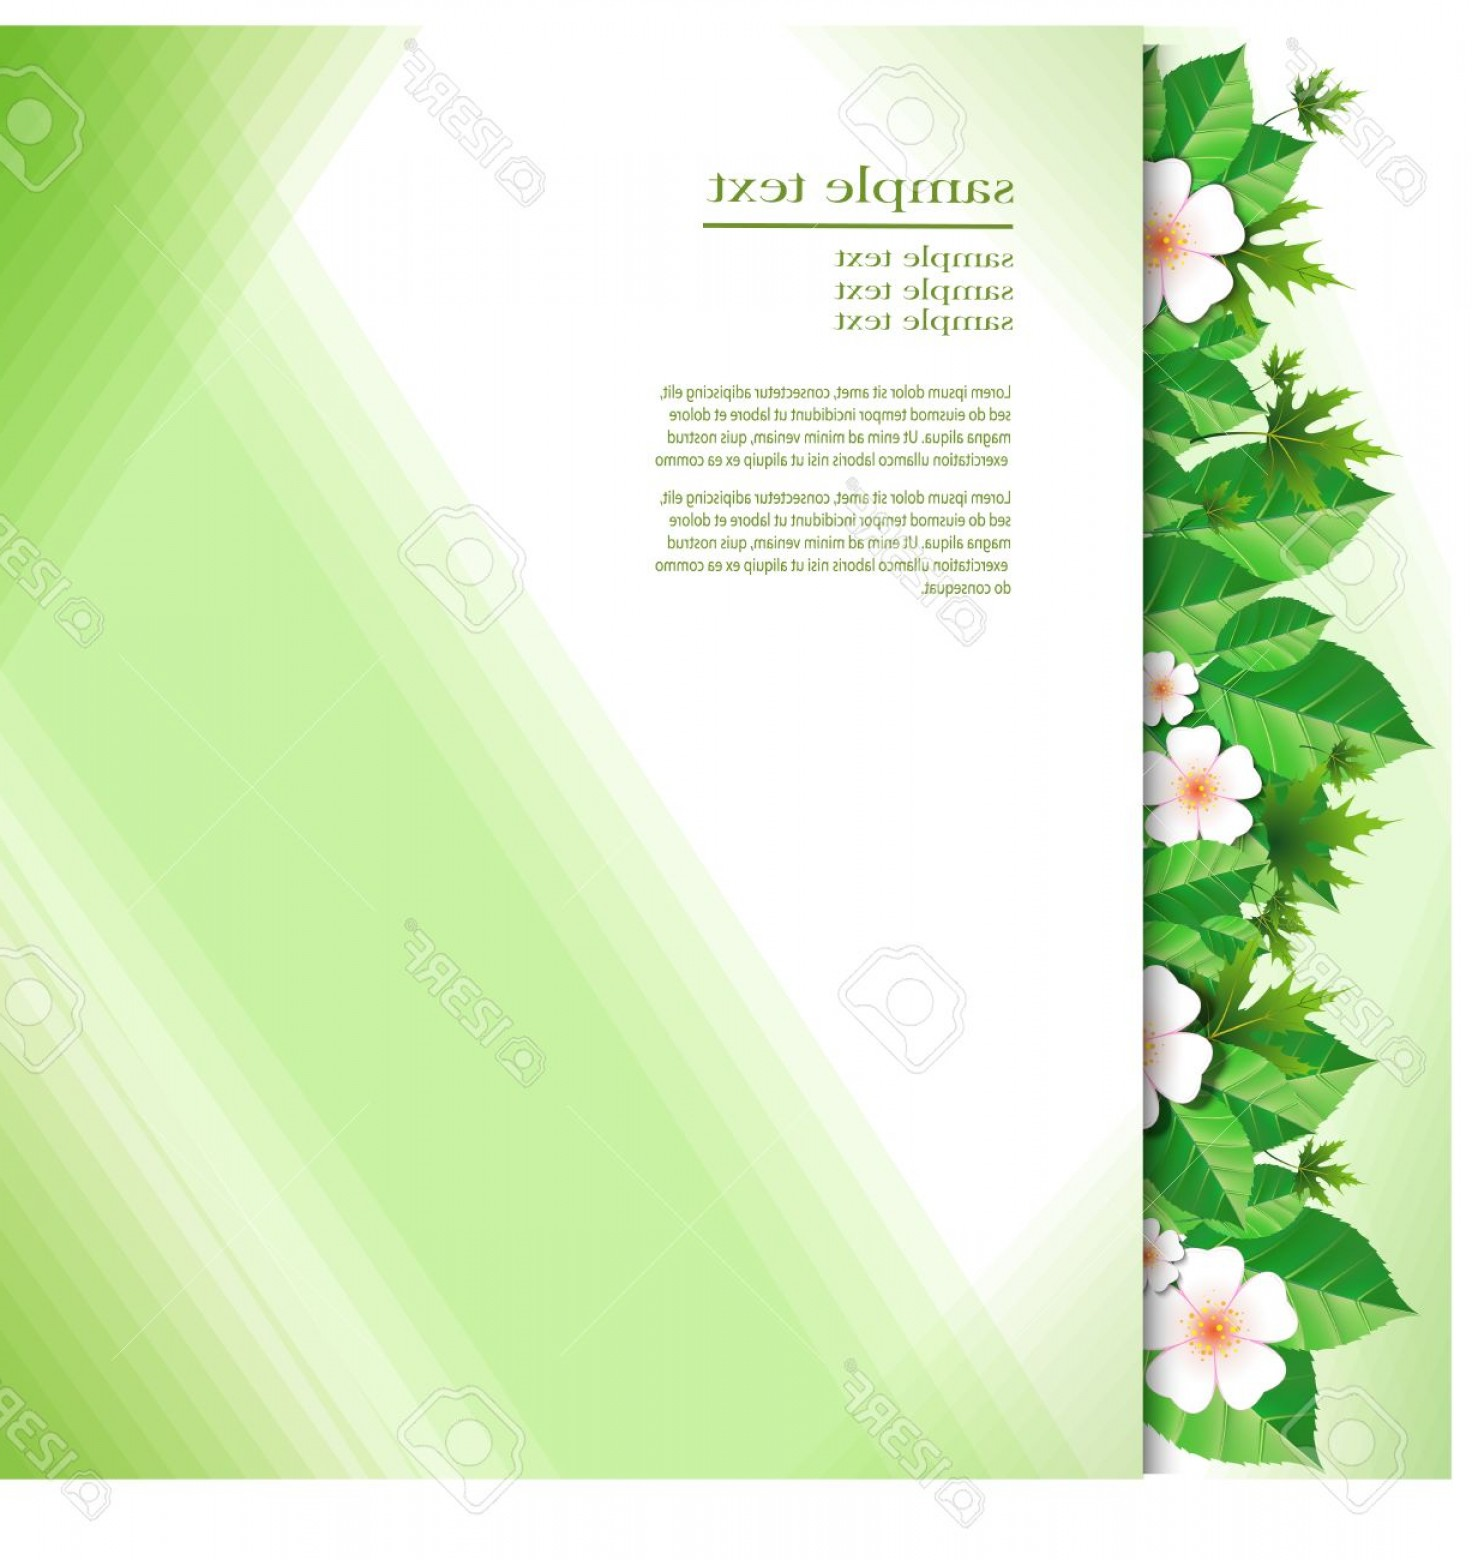 Green Flower Vector Designs: Photostock Vector Green Flower Background Greeting Card Abstract Floral Design In White Green And Light Yellow Color V